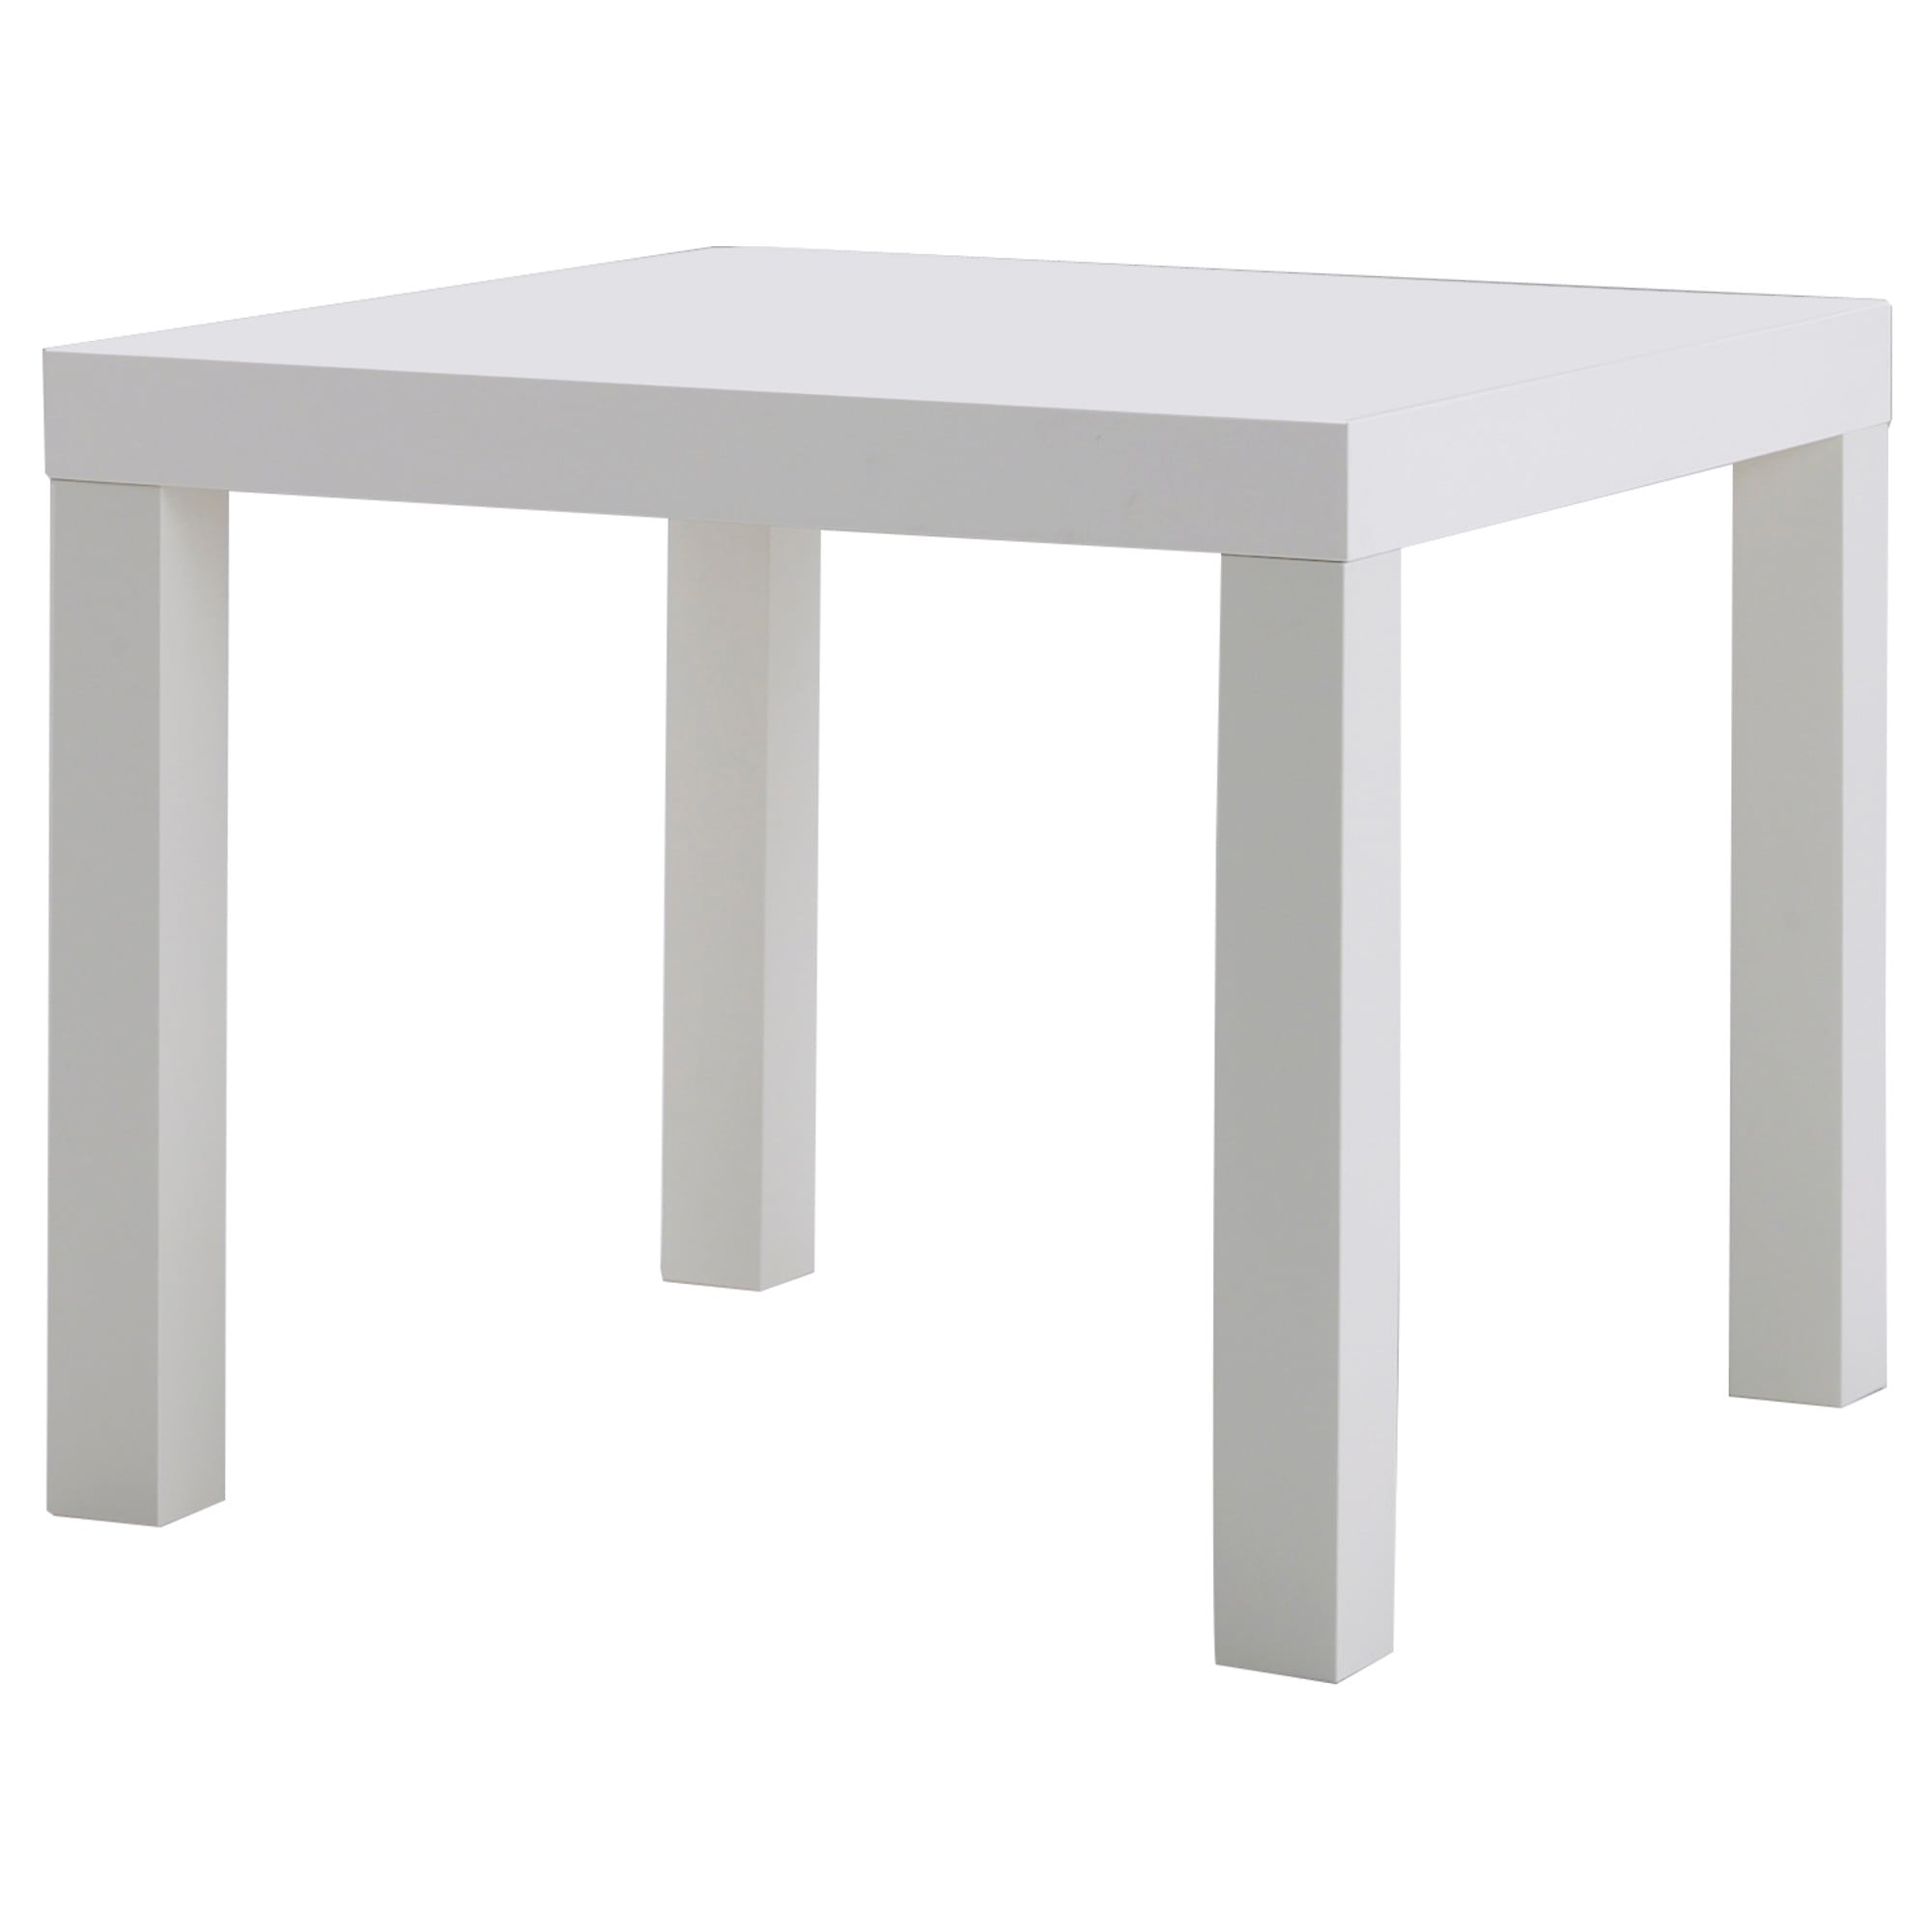 "LACK Side table white 21 5 8x21 5 8 "" IKEA"